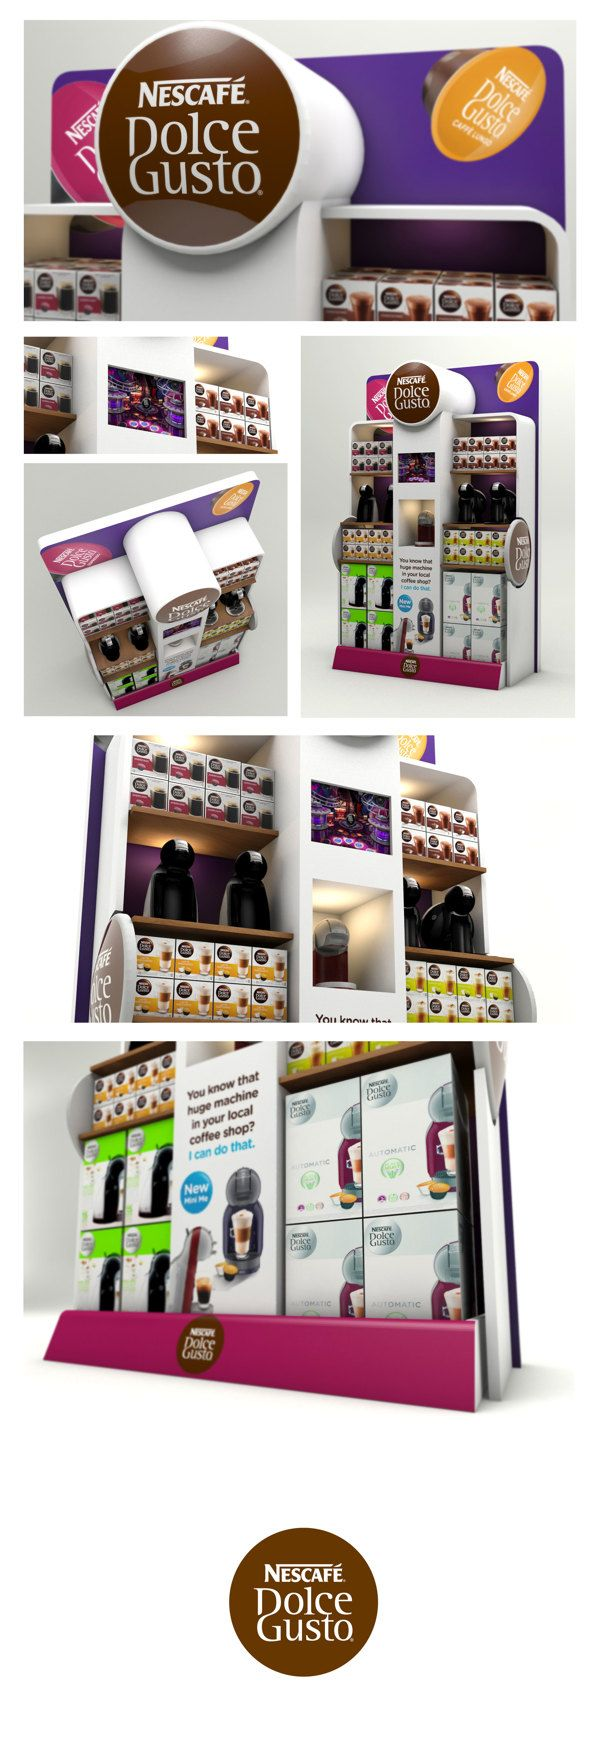 Dolce Gusto Retail Display by Neil Colley, via Behance